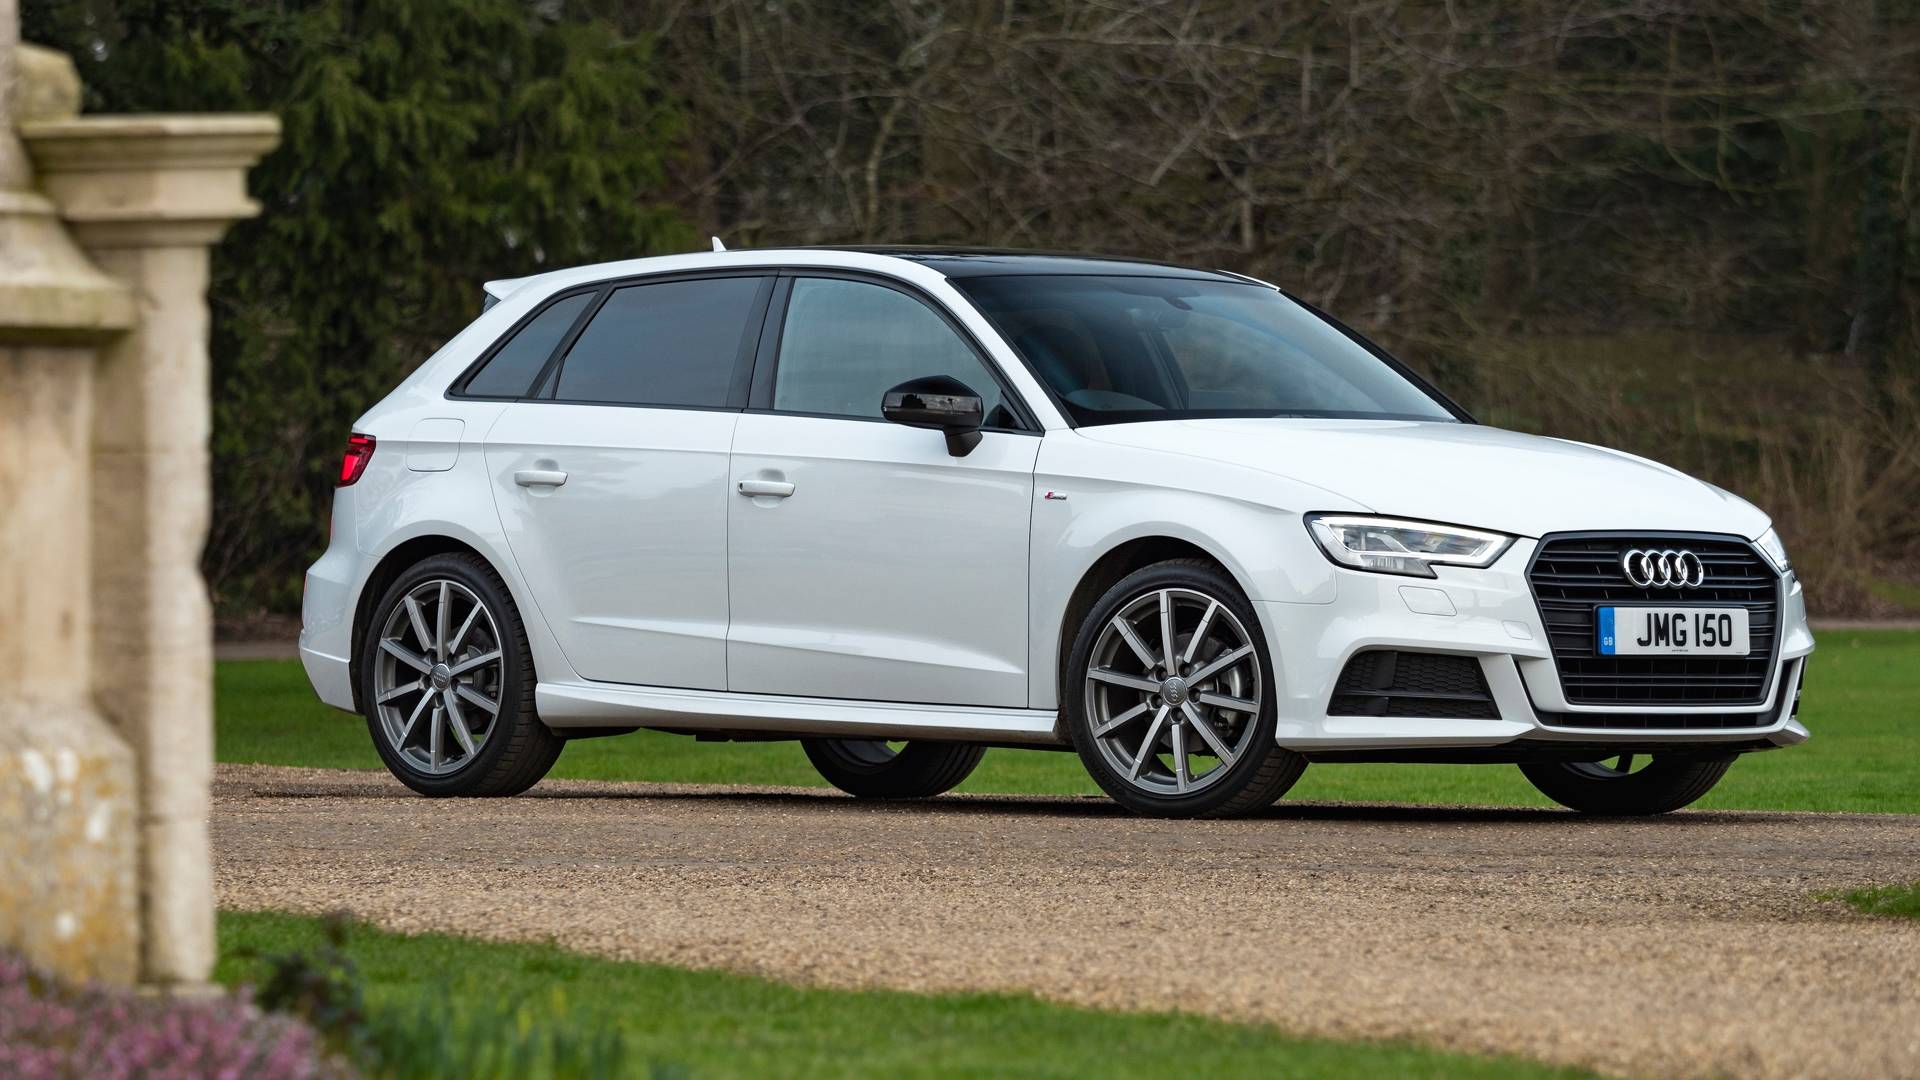 Audi A Sportback TFSI First Drive The New TDI - Audi a3 sportback